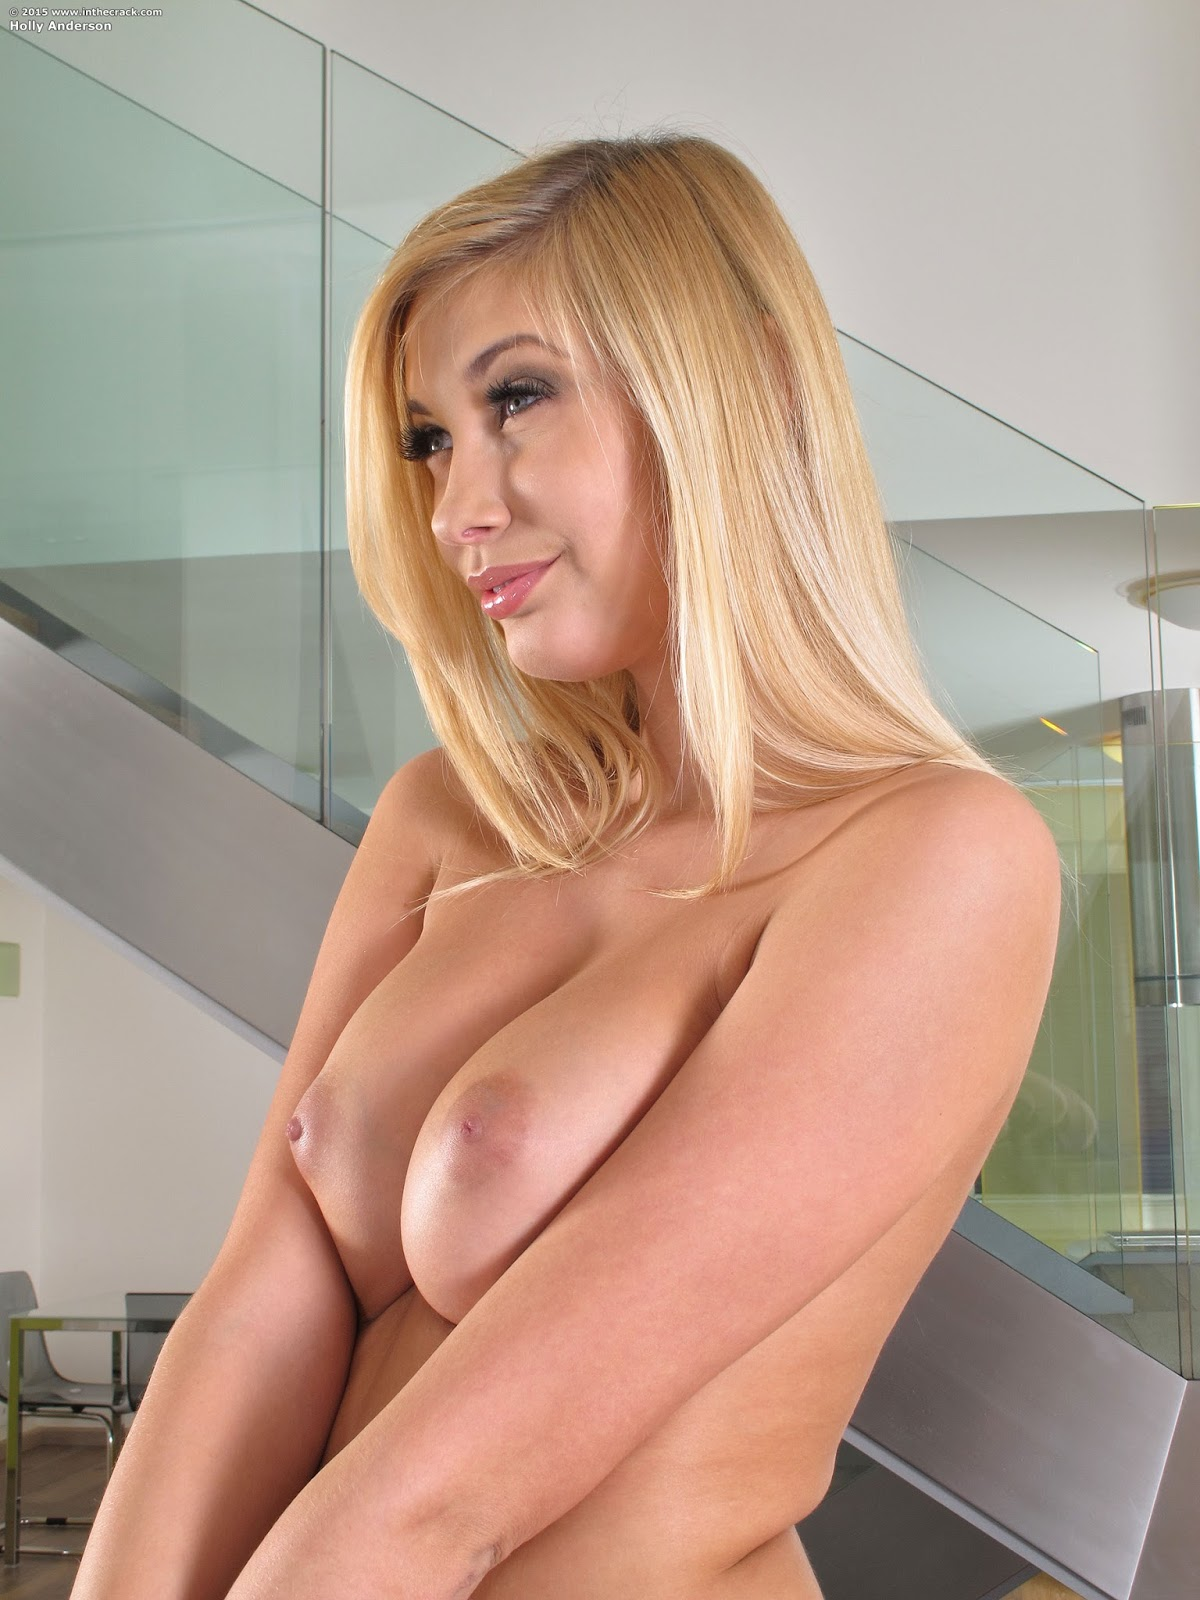 holly anderson naked